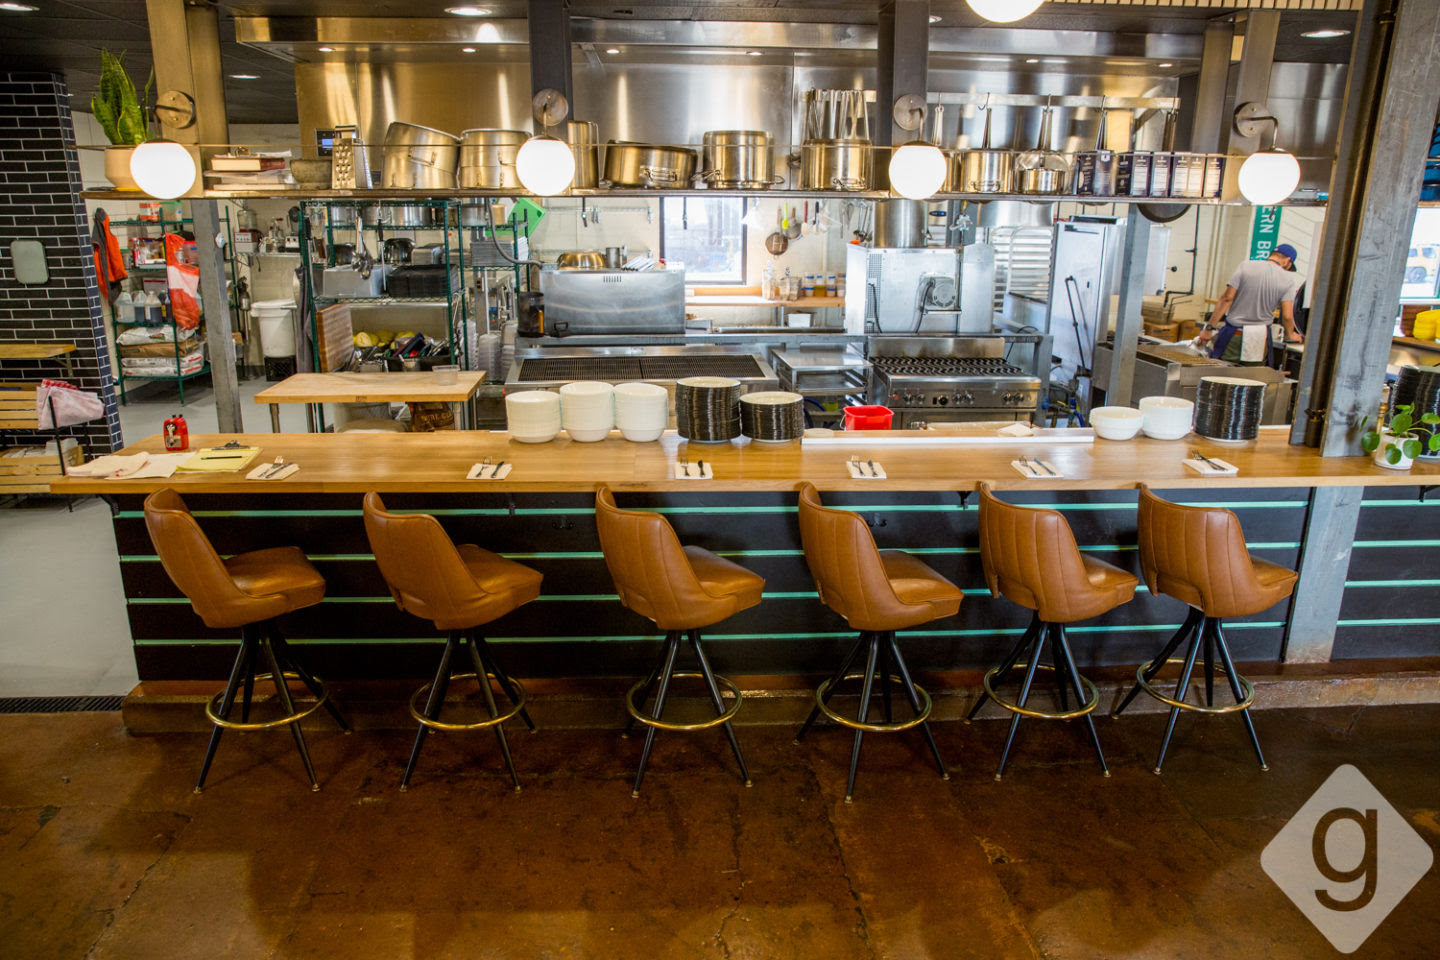 A Look Inside Mop Broom Mess Hall Nashville Guru